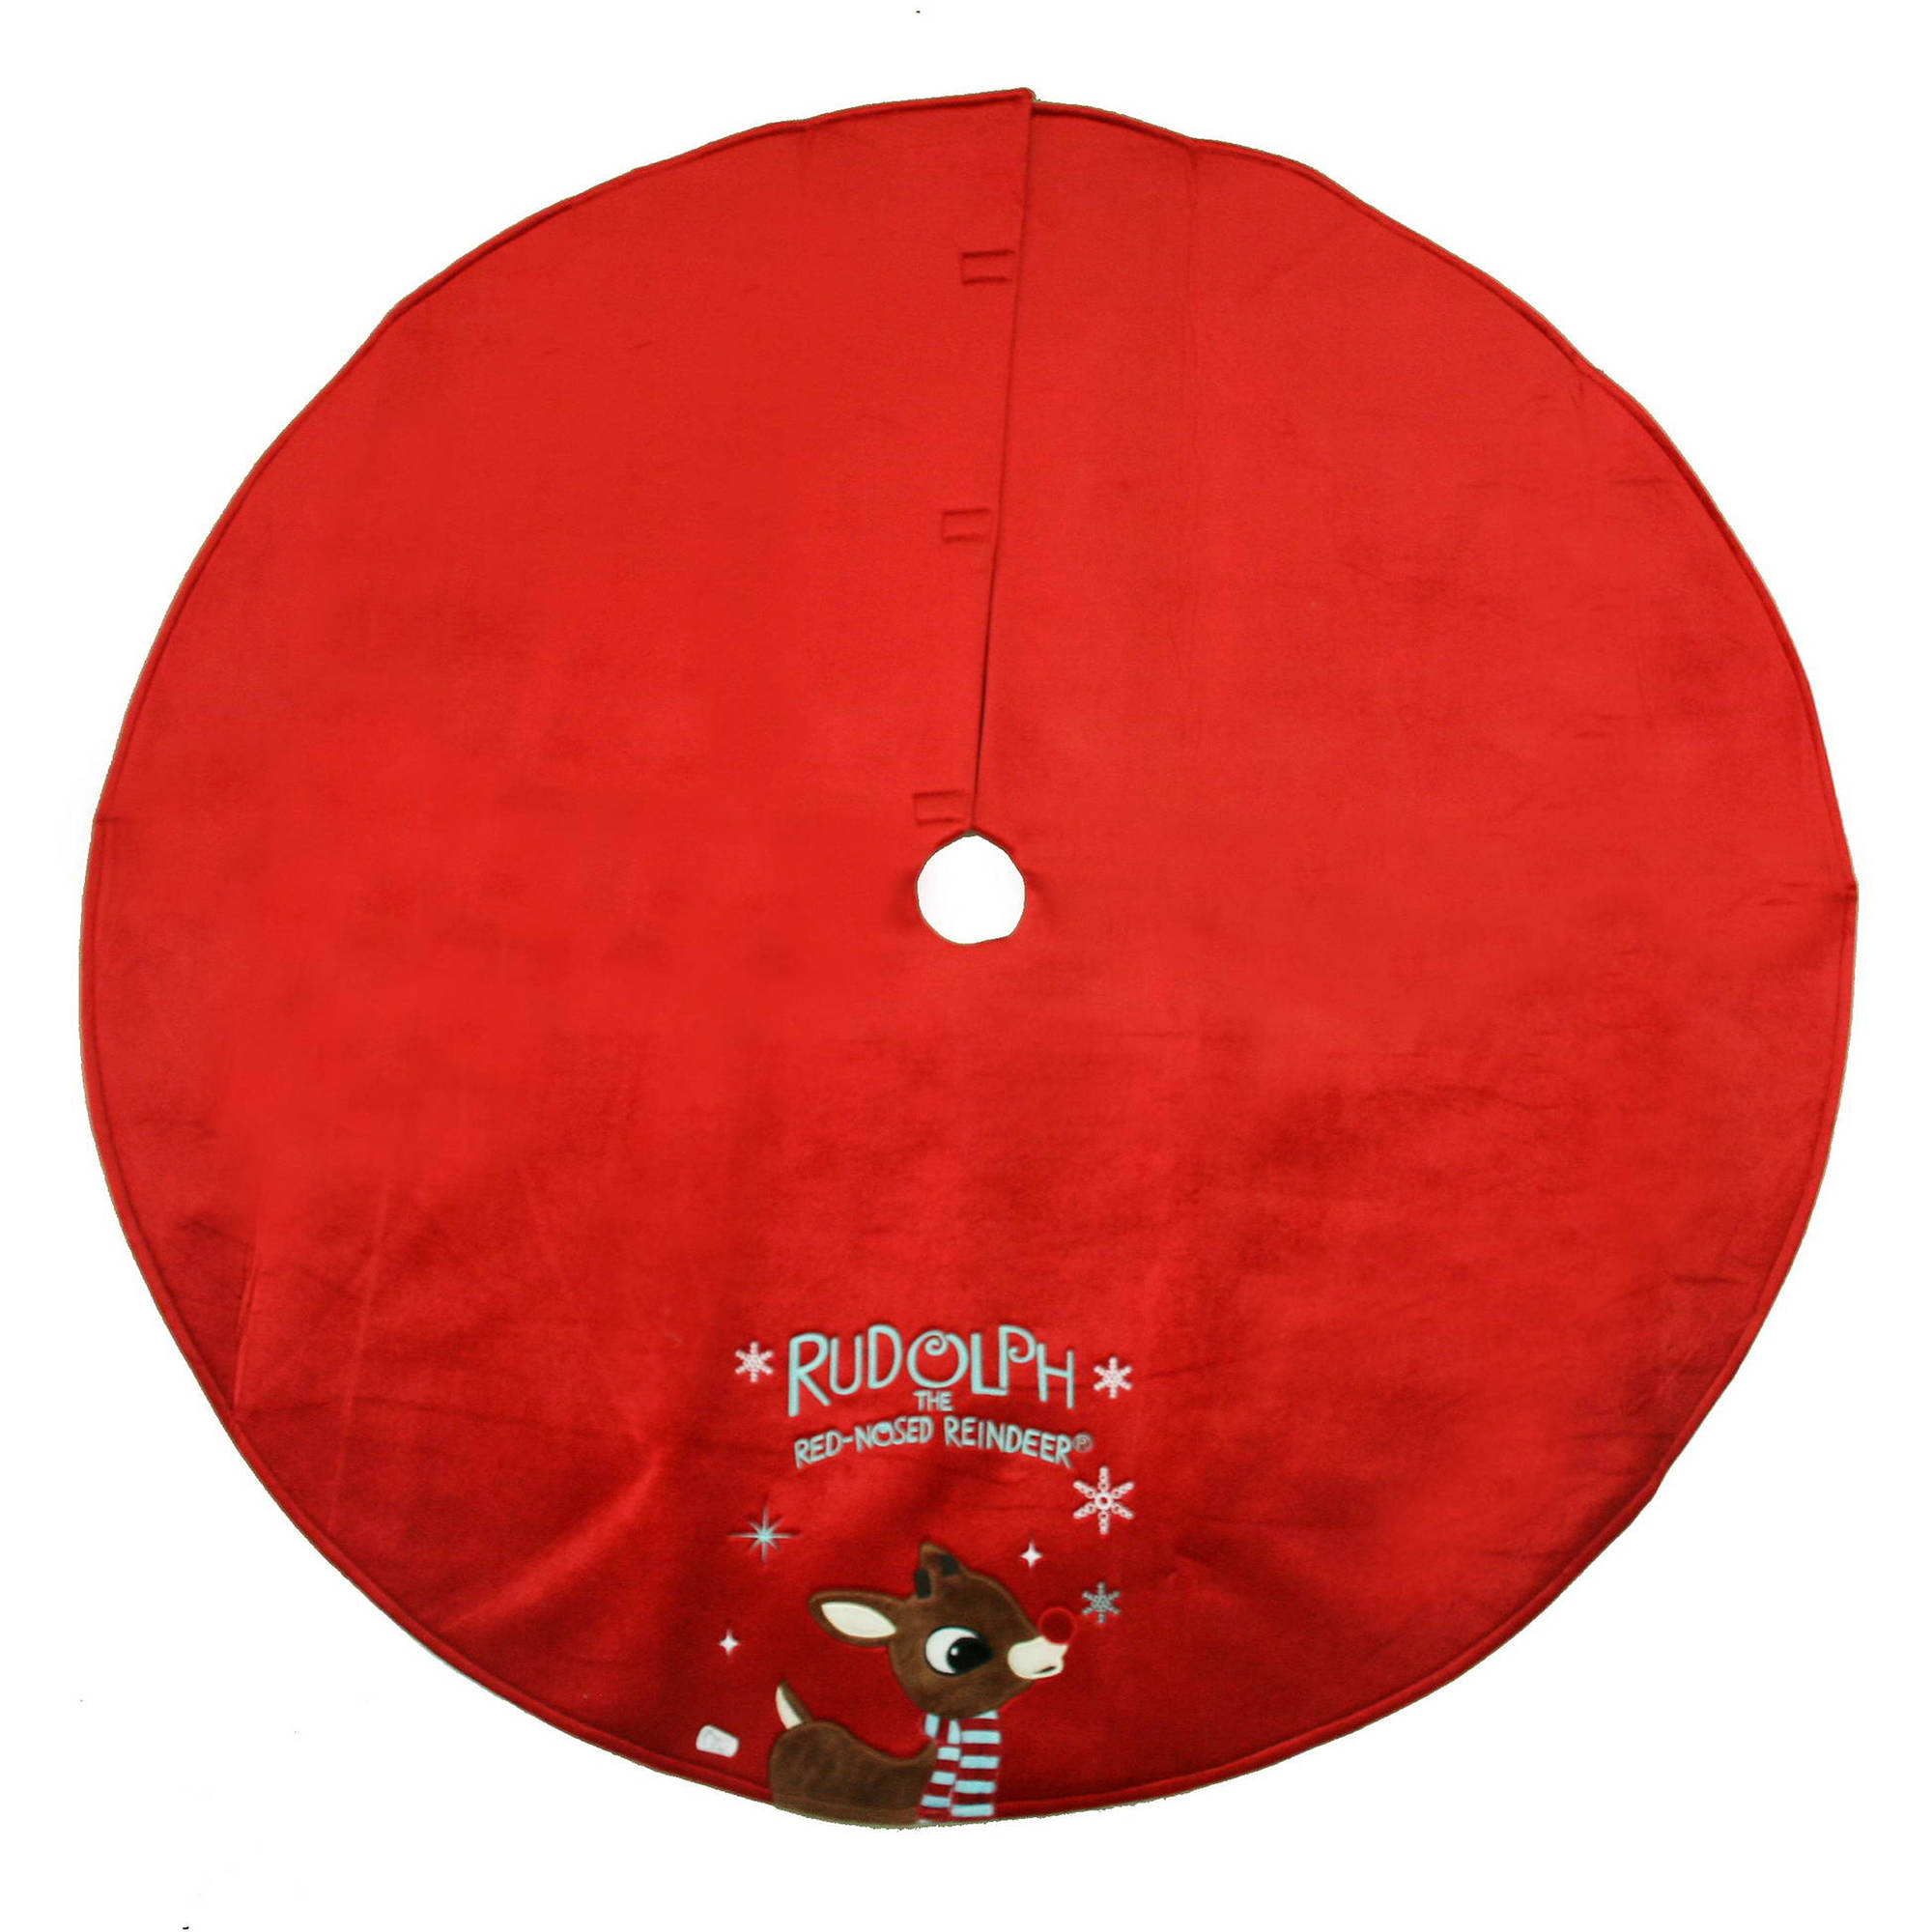 DAFENG CHUANGYI ARTS AND CRAFTS CO.,LTD. Holiday Time Christmas Decor Rudolph The Red Nose Reindeer 48 Tree Skirt